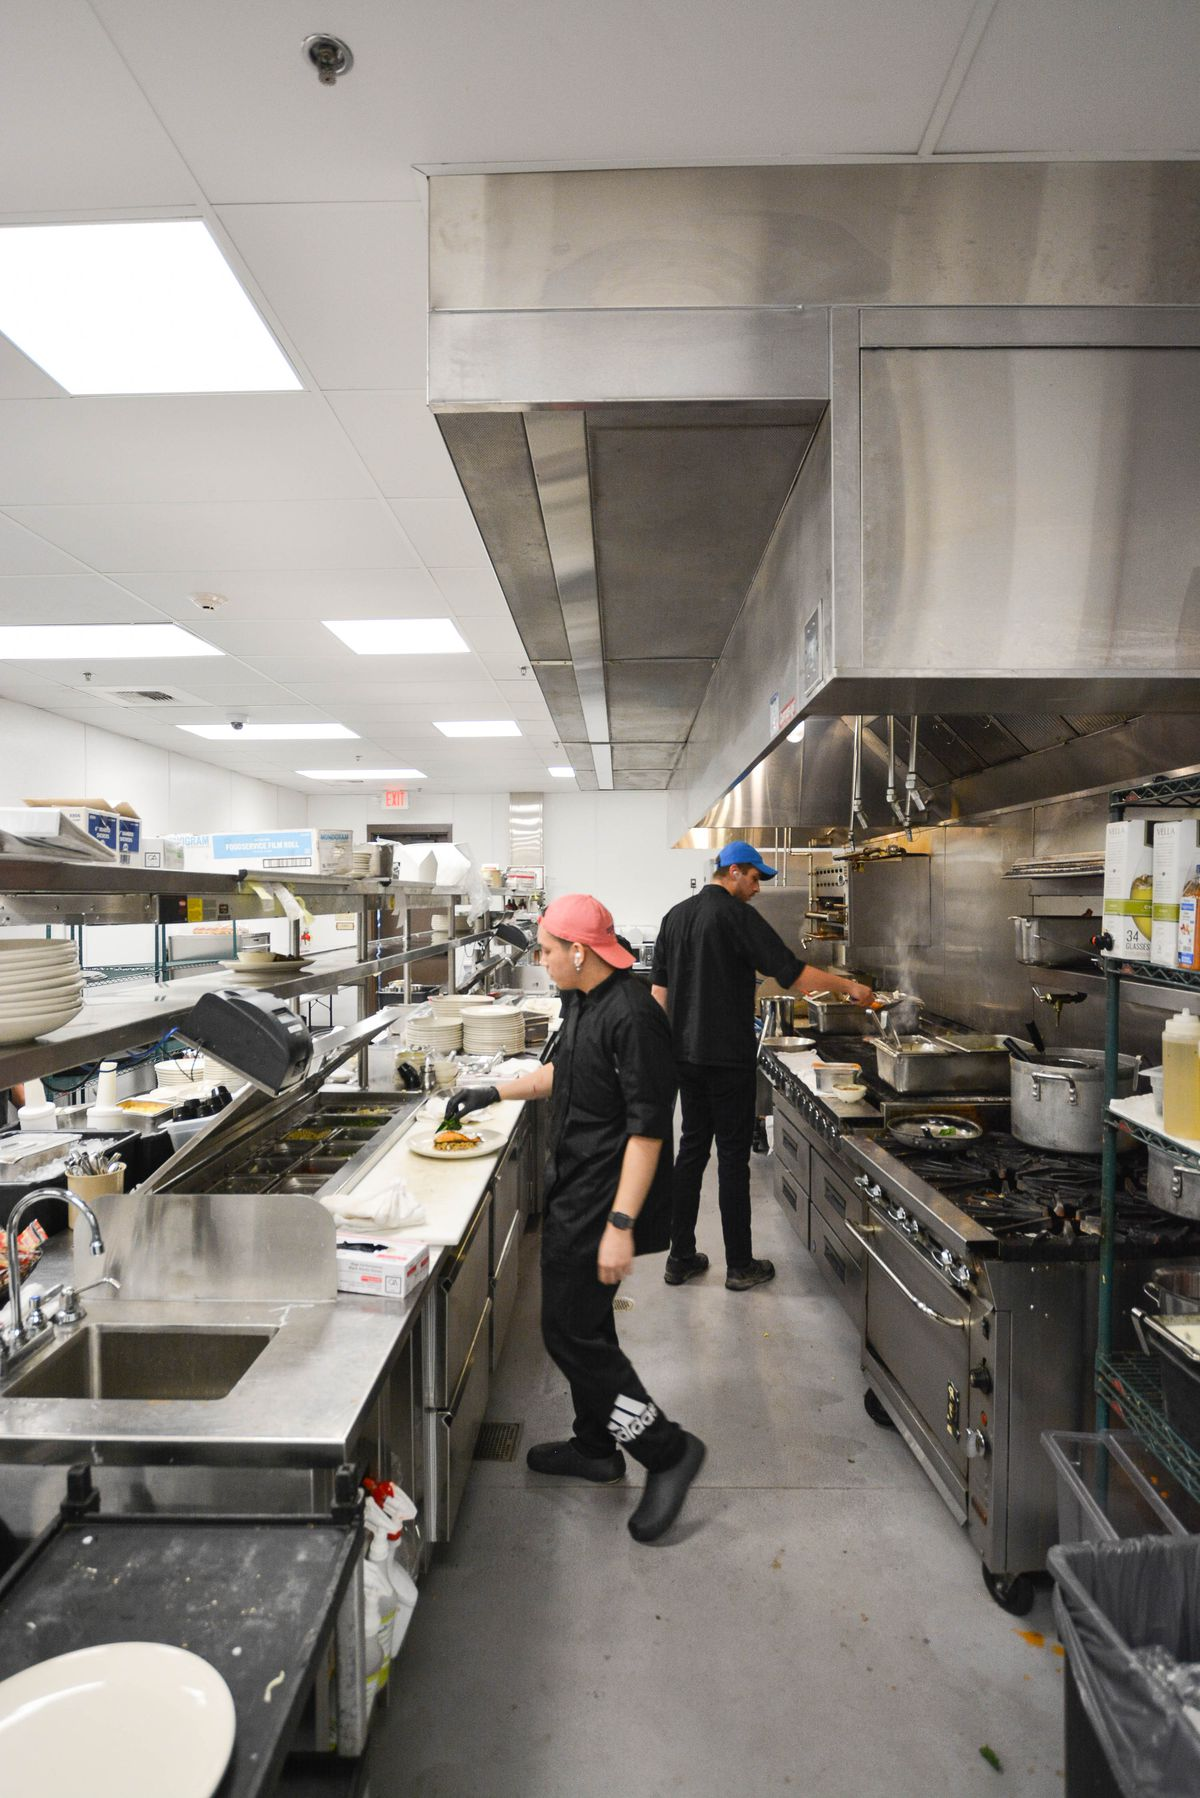 A worker with headphones prepares food inside of a bright kitchen.